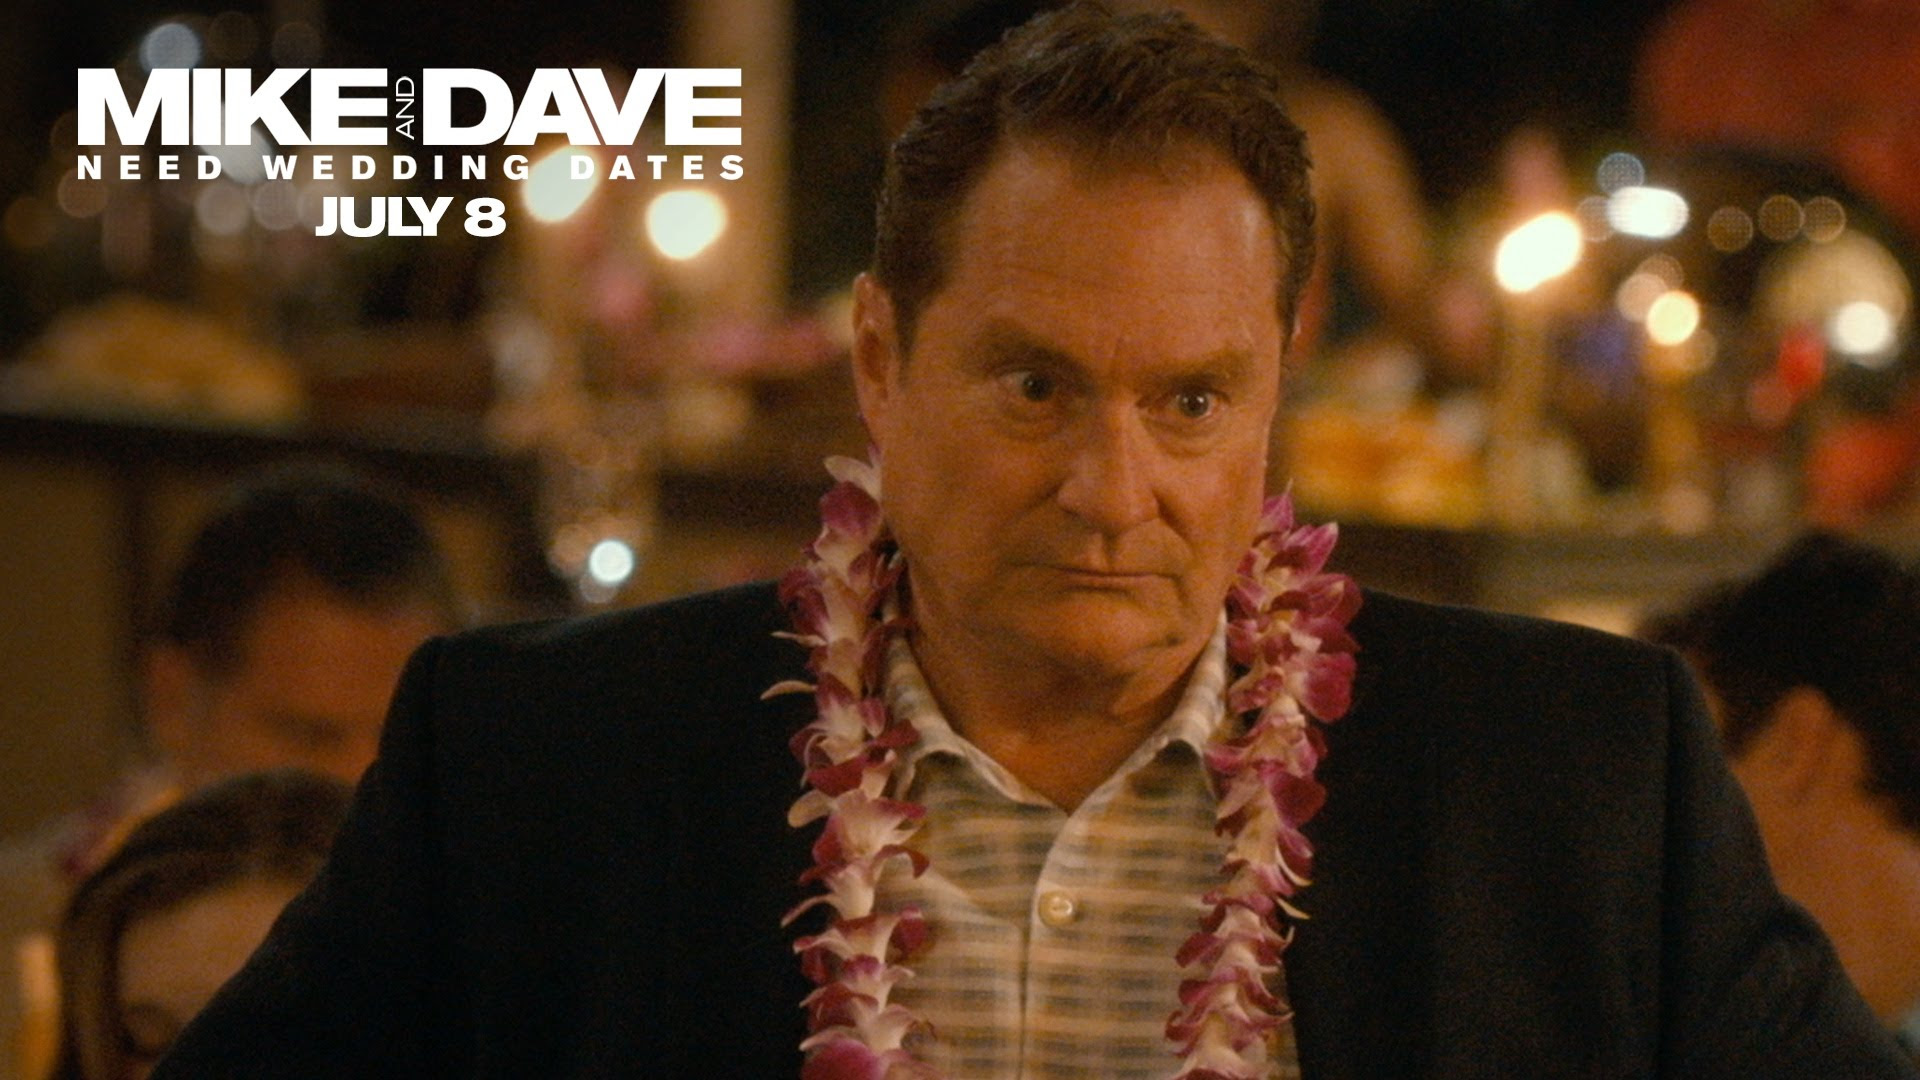 Mike and Dave Need Wedding Dates | Happy Father's Day ...